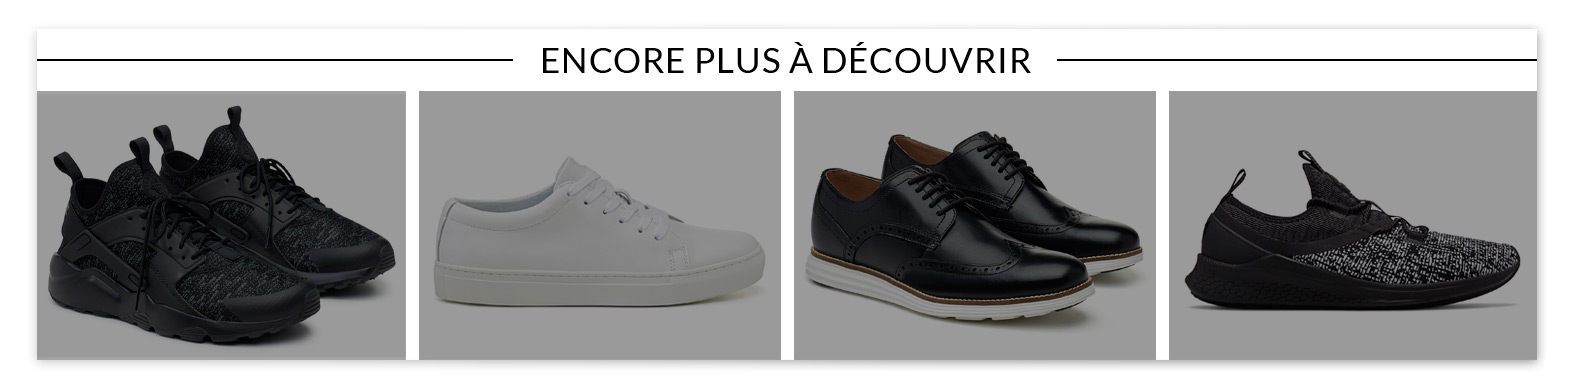 P18-BGM-HOMME-CHAUSSURES_More to discover.psd